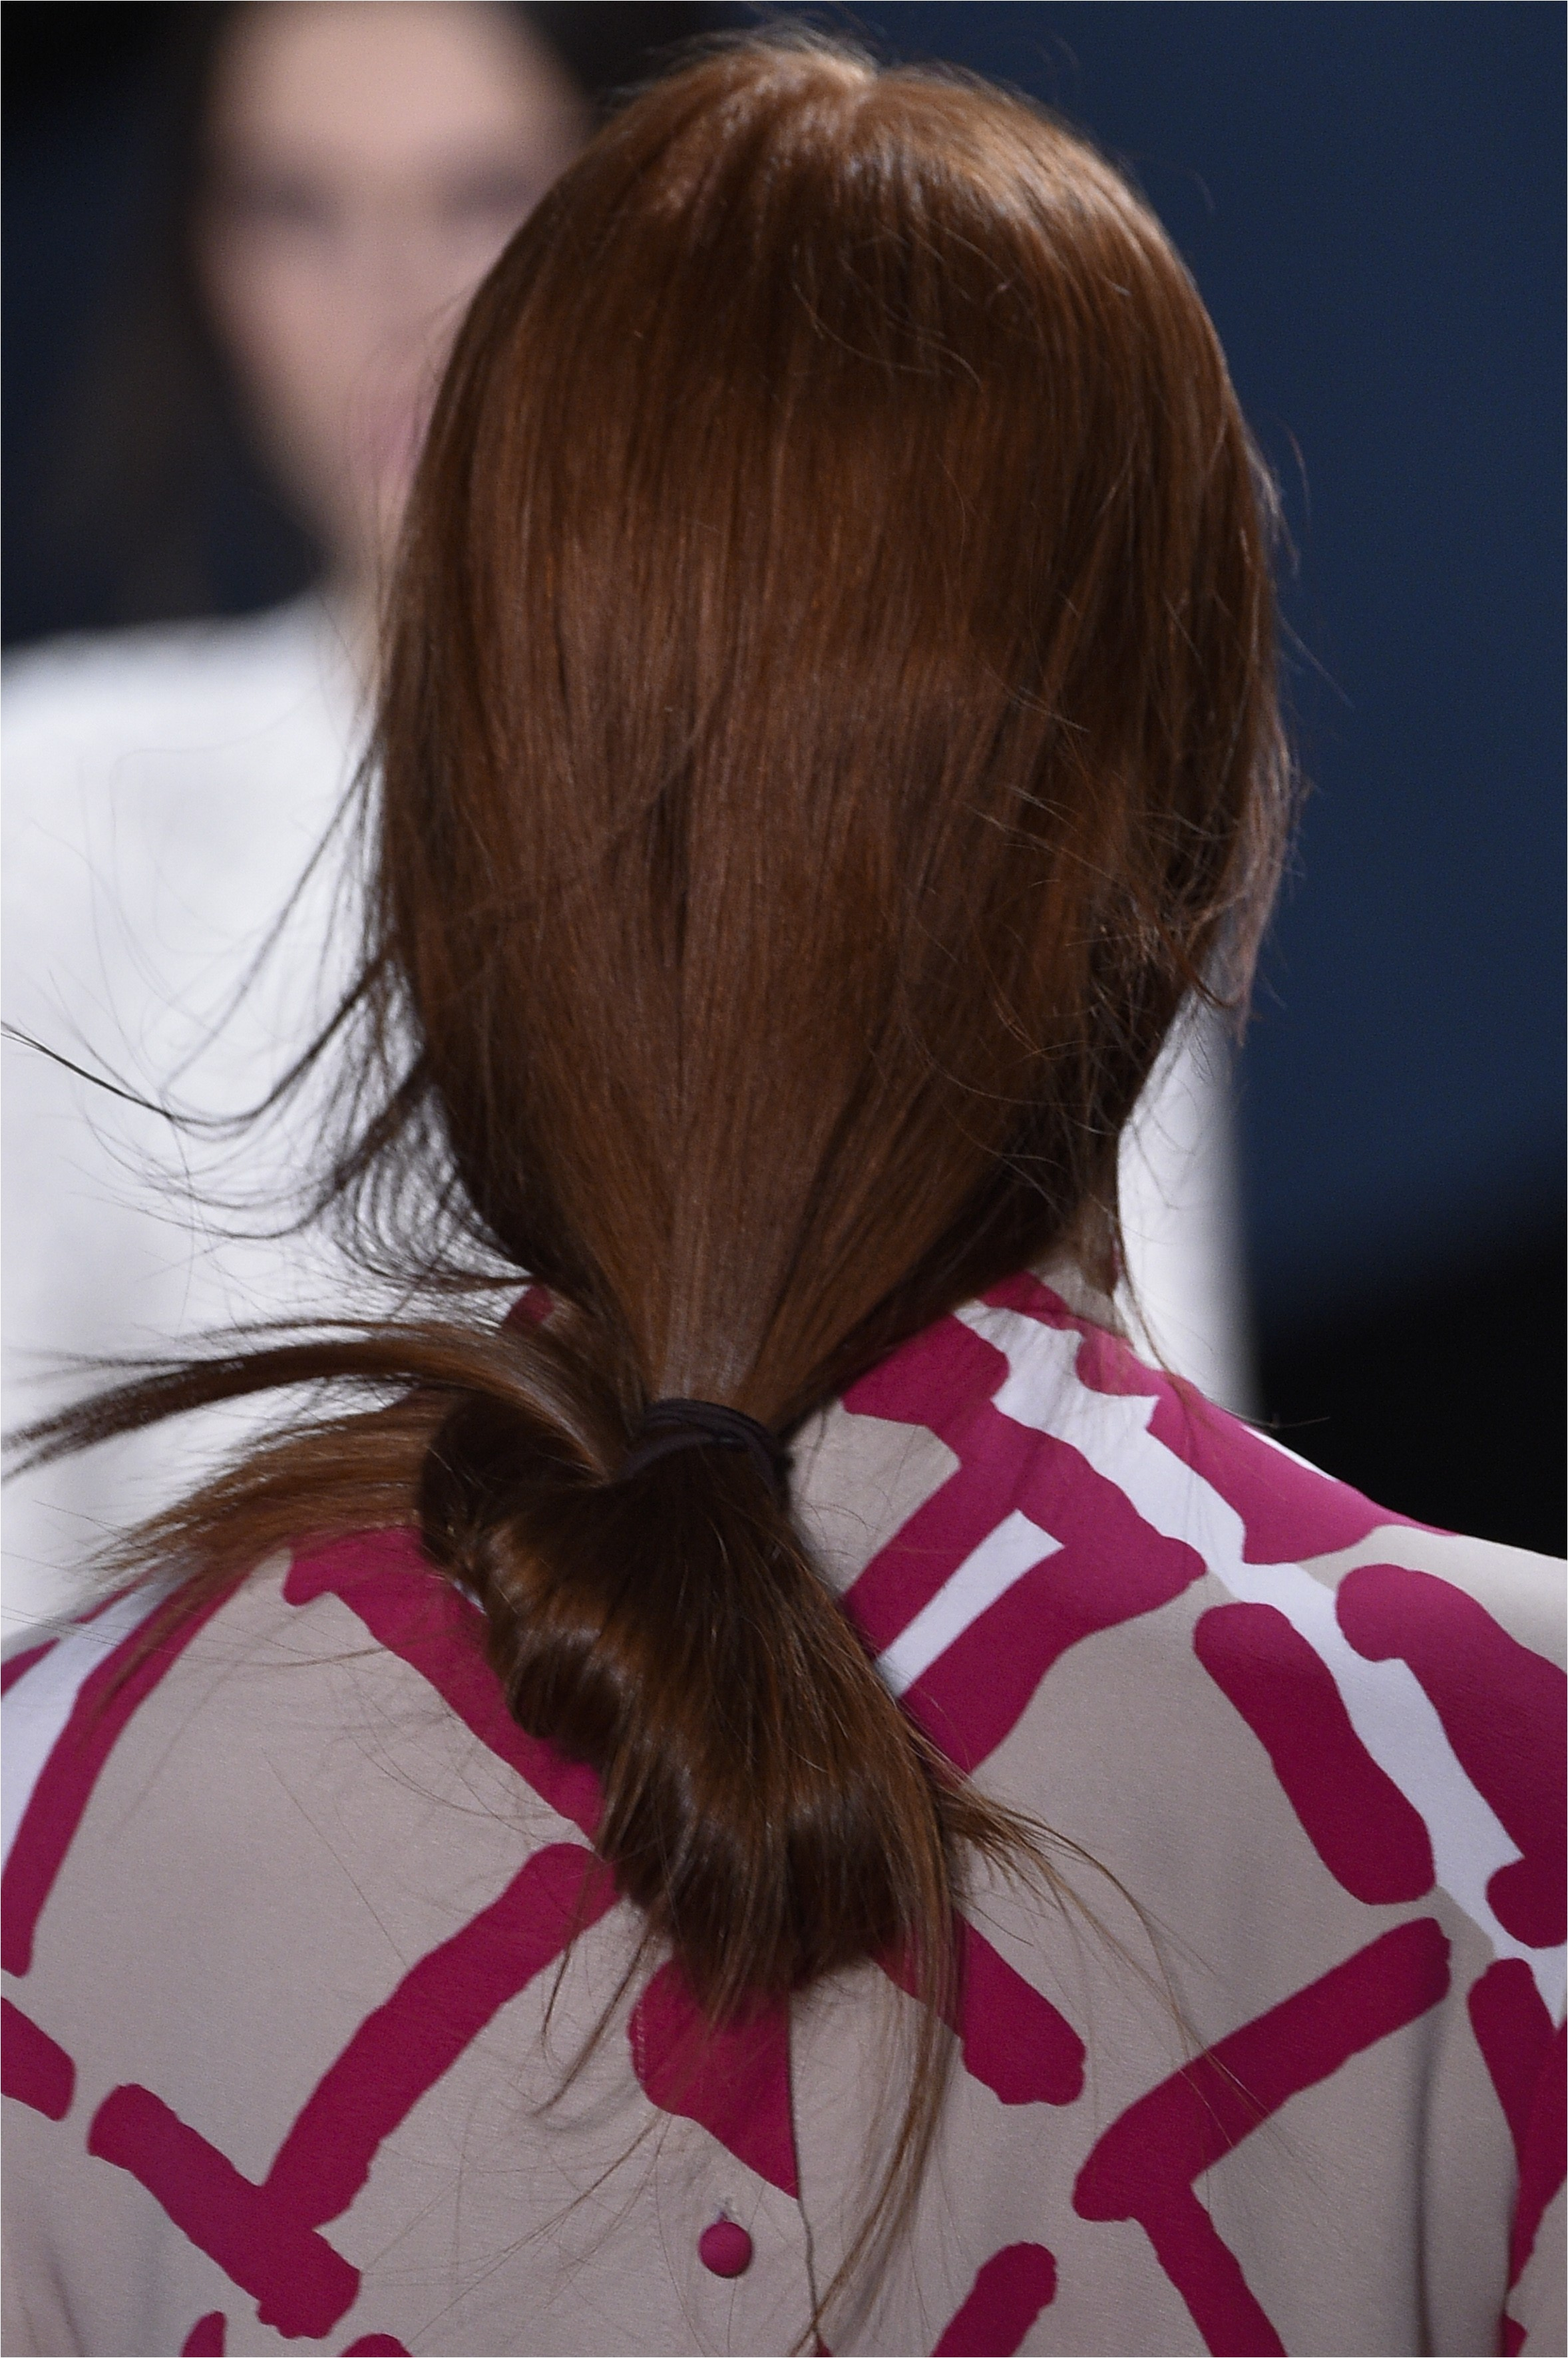 Easy Hairstyles with Only A Hair Tie Hairstyles You Can Do with E Hair Tie Easy Hair Ideas